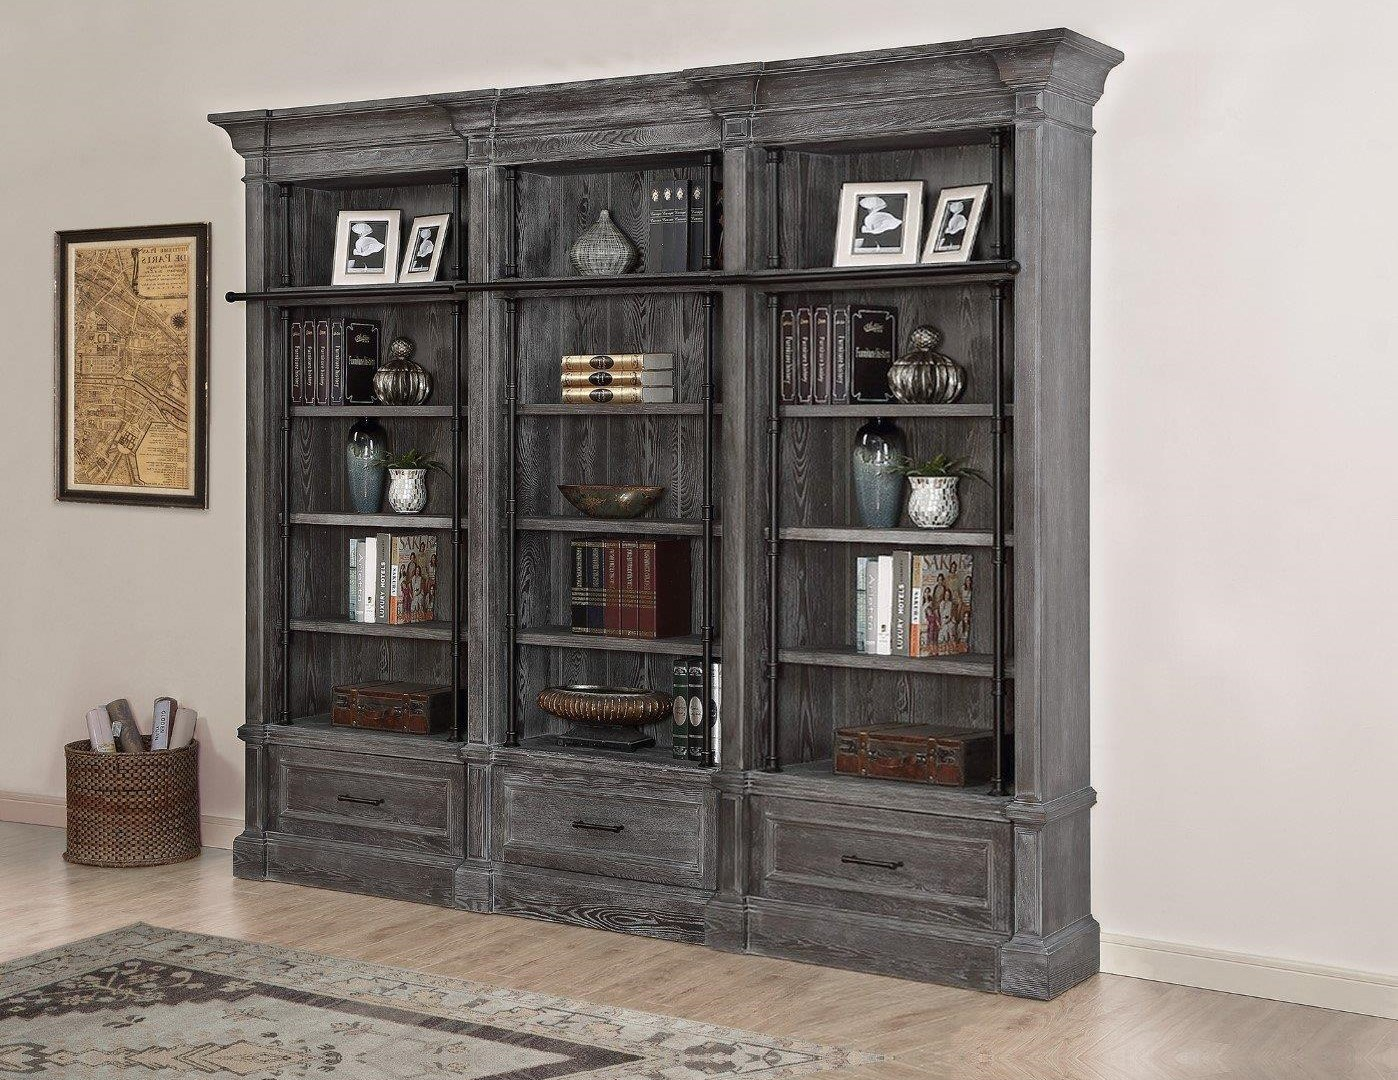 Gramercy Park 3 Pc Bookcase And Ladder Set